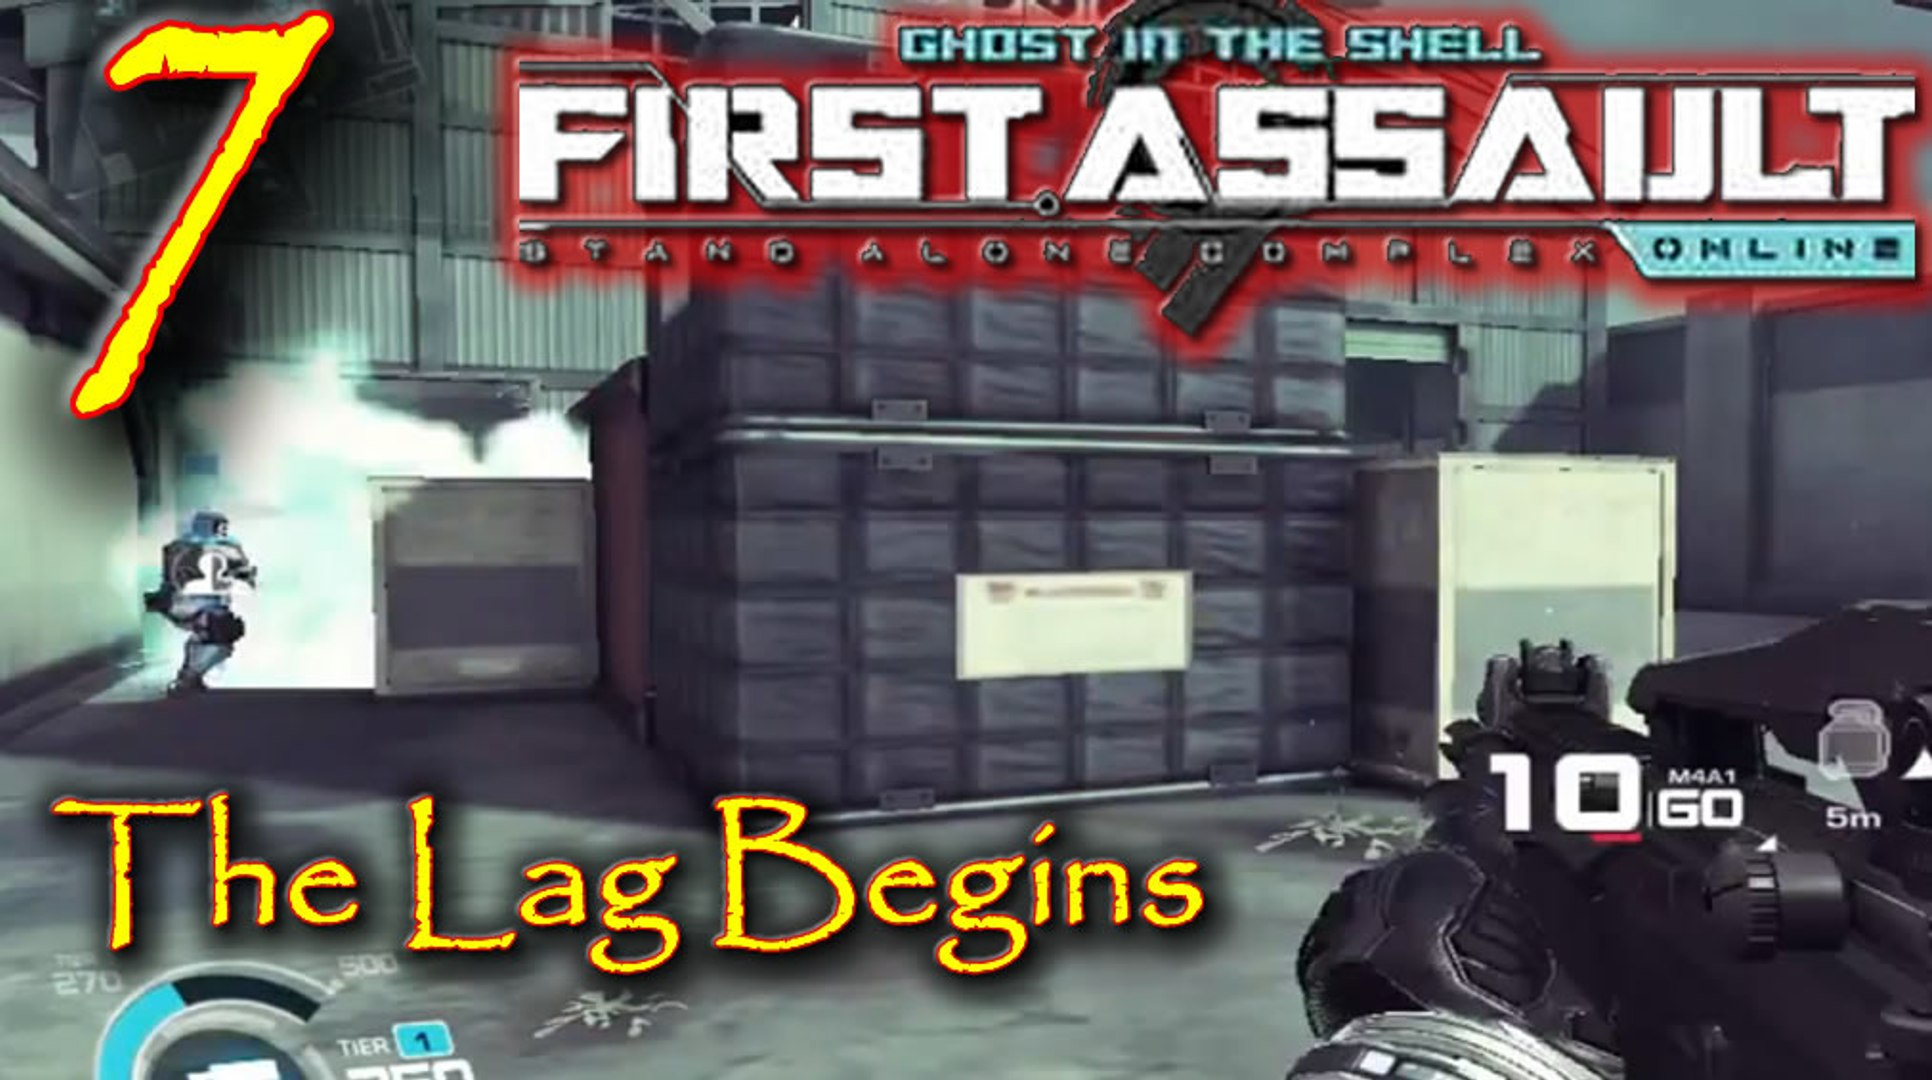 The Lag Begins Lets Play Ghost In The Shell Stand Alone Complex First Assault Online Episode 7